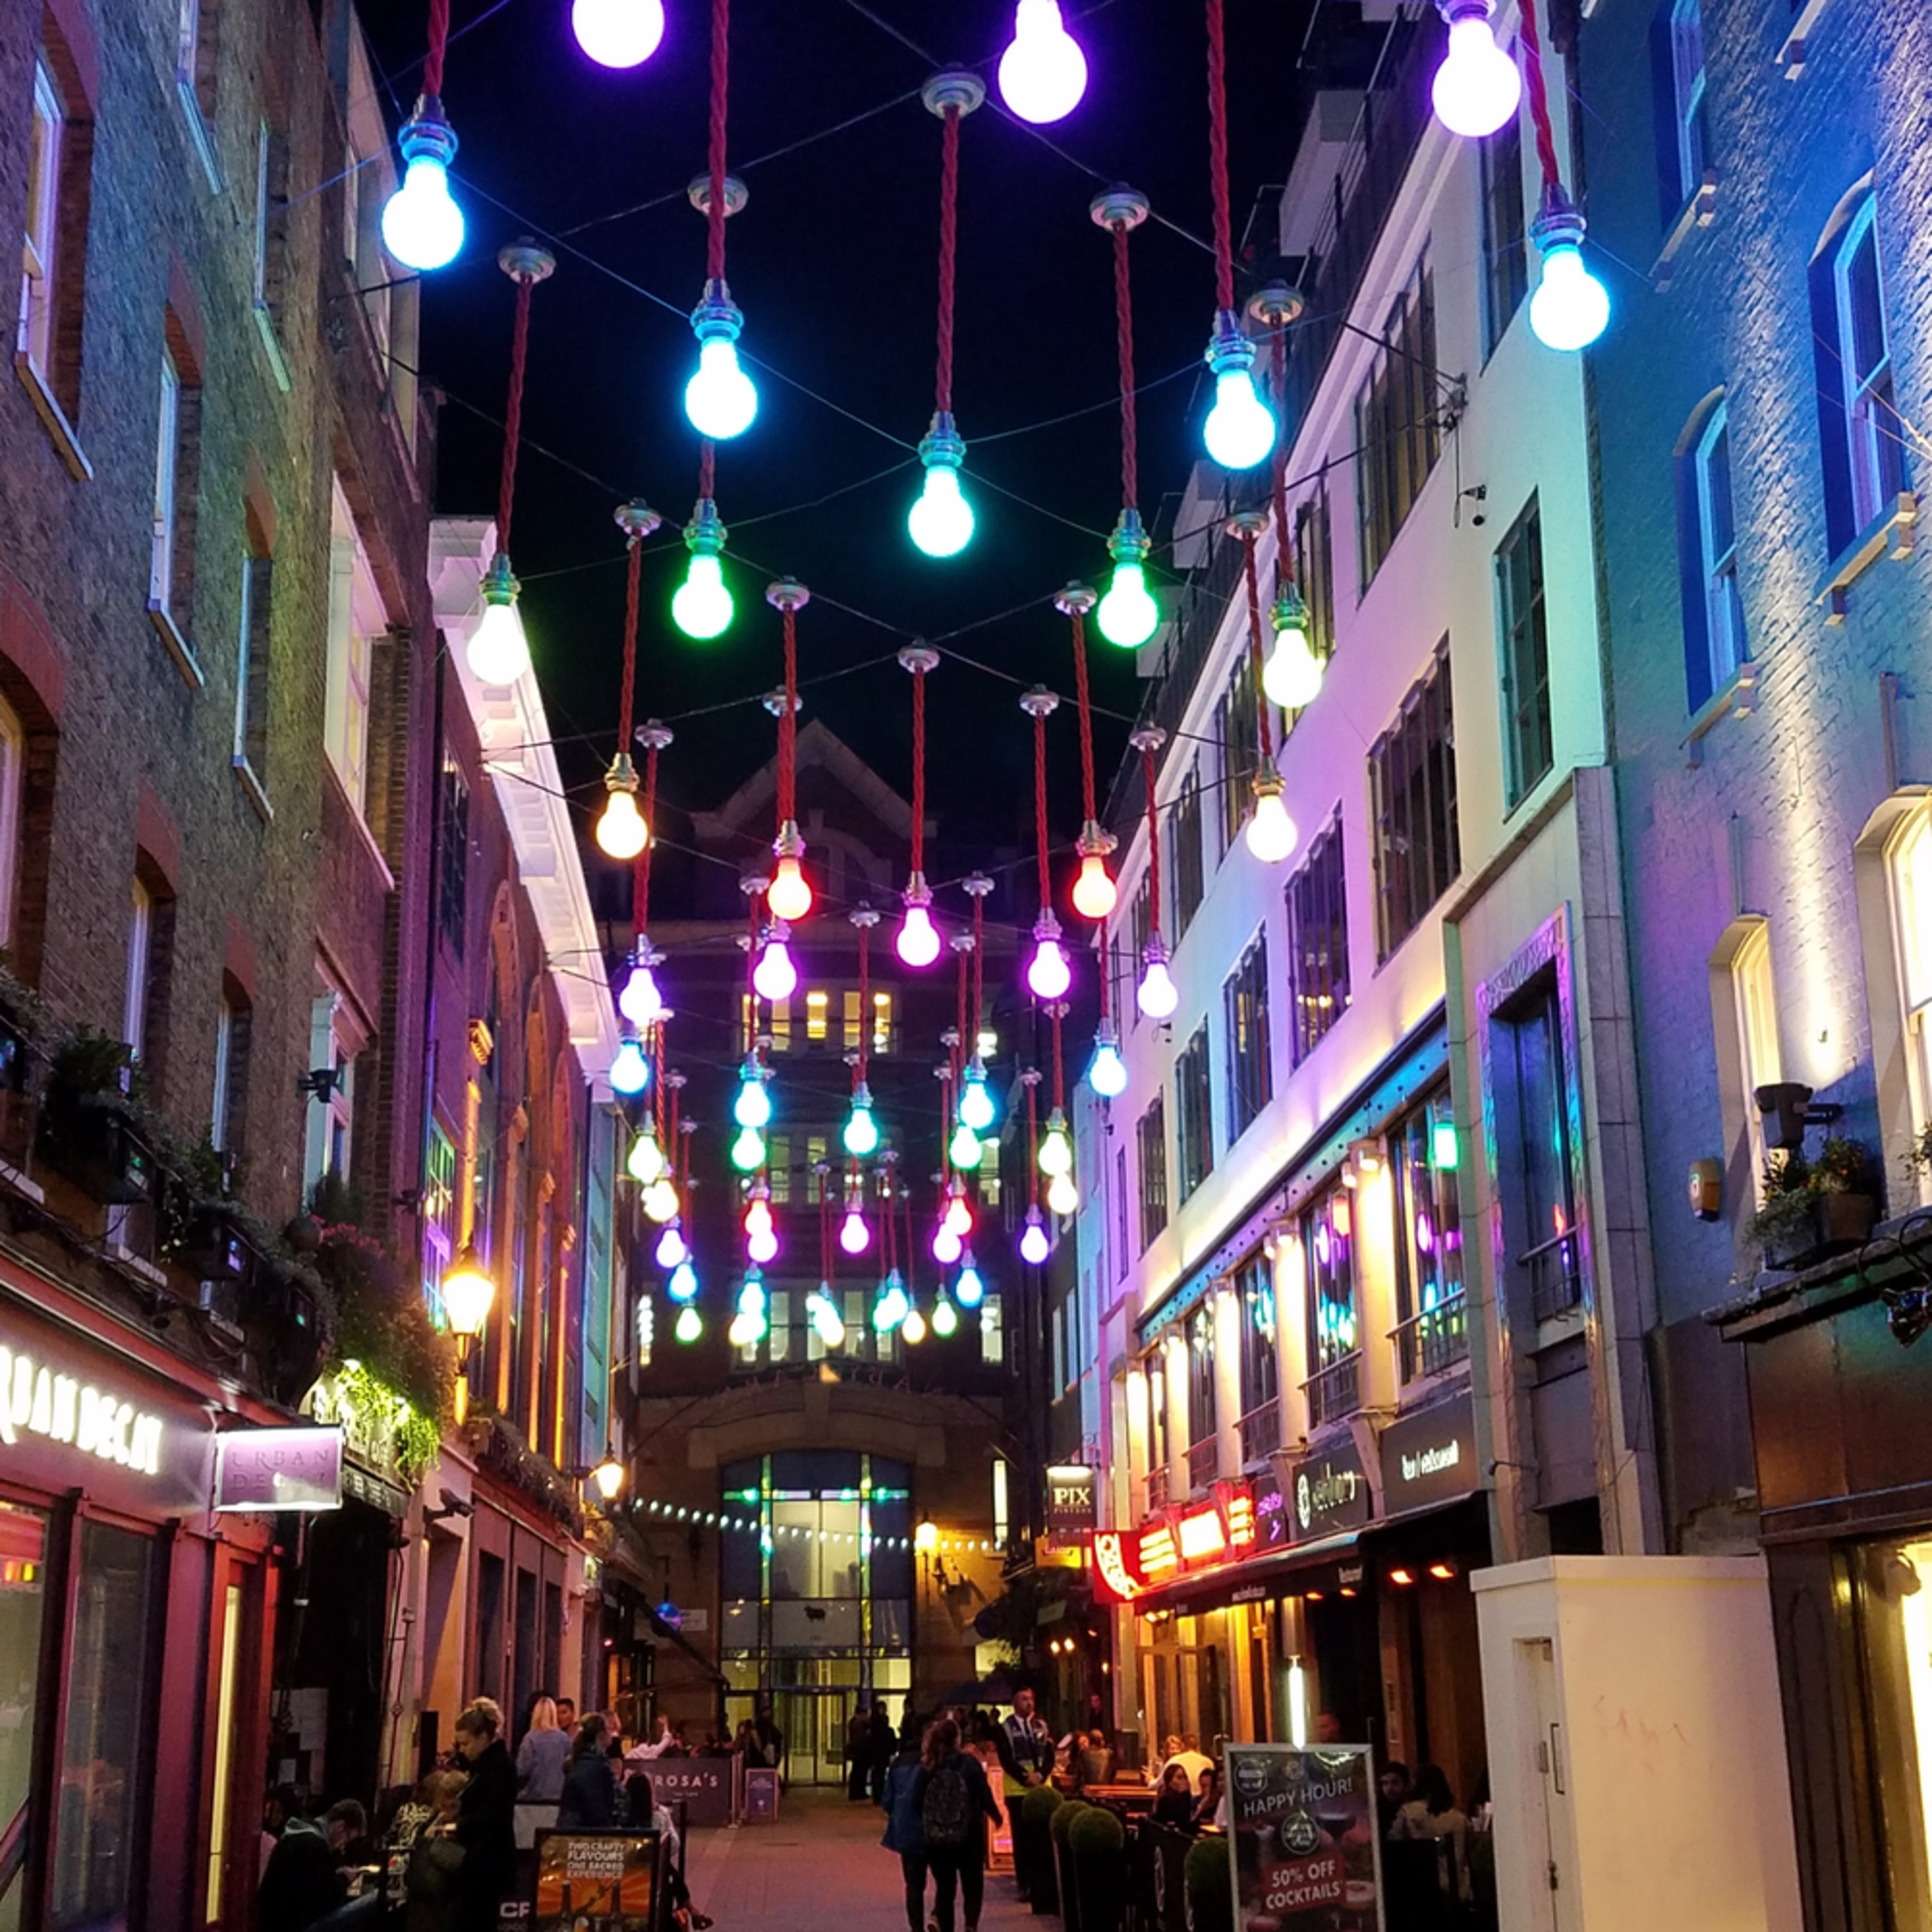 Under the lights at carnaby street zplibh